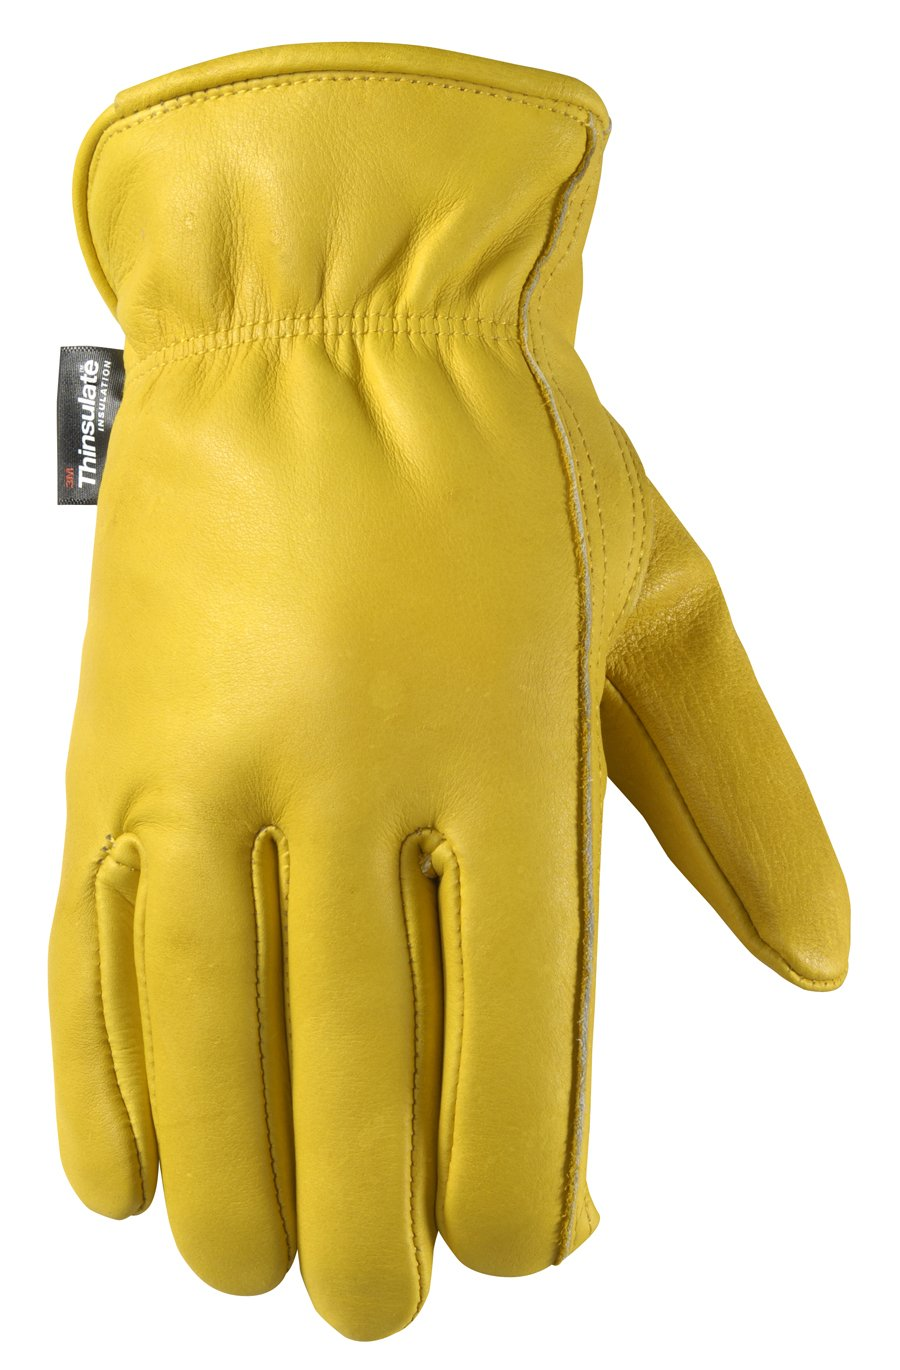 Insulated leather work gloves amazon - Wells Lamont Leather Work Gloves Insulated Grain Cowhide Large 1108l Cold Weather Work Glove Amazon Com